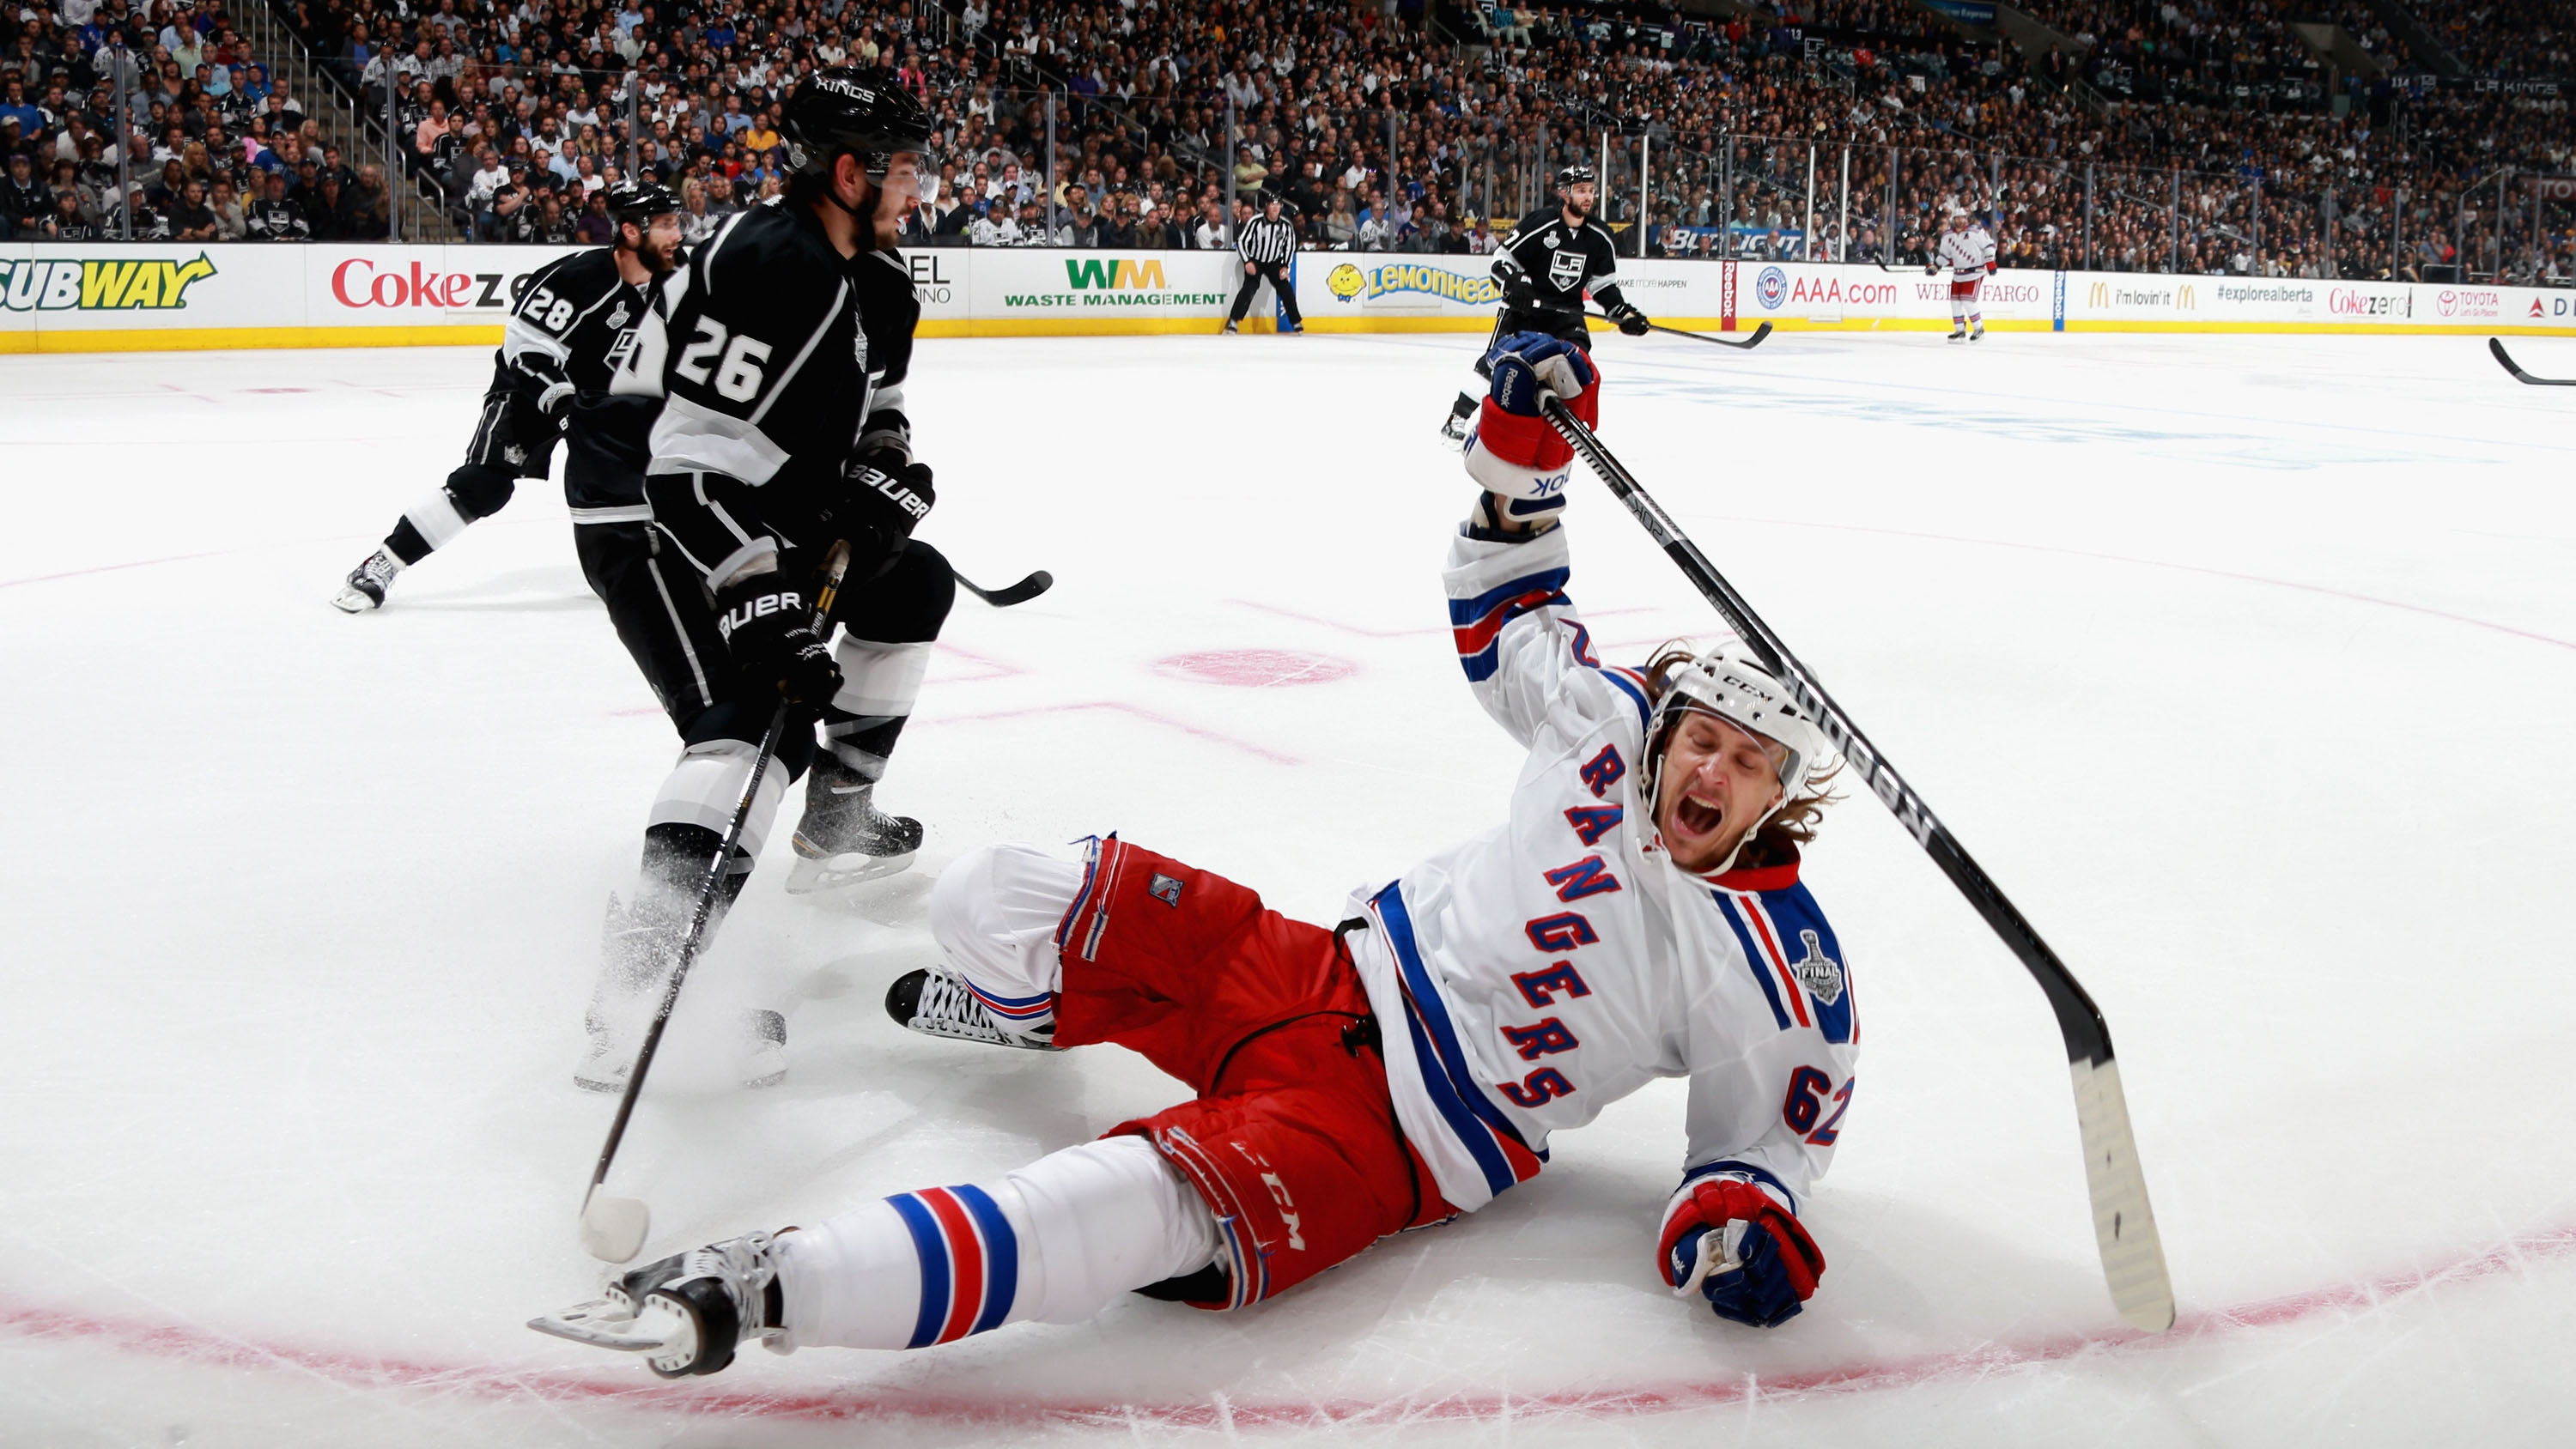 Carl Hagelin #62 of the New York Rangers falls to the ice in the second period of Game One of the 2014 Stanley Cup Final against the Los Angeles Kings at Staples Center on June 4, 2014 in Los Angeles, California. The Los Angeles Kings beat the New York Rangers 3-2.  Click through to see more from the game.